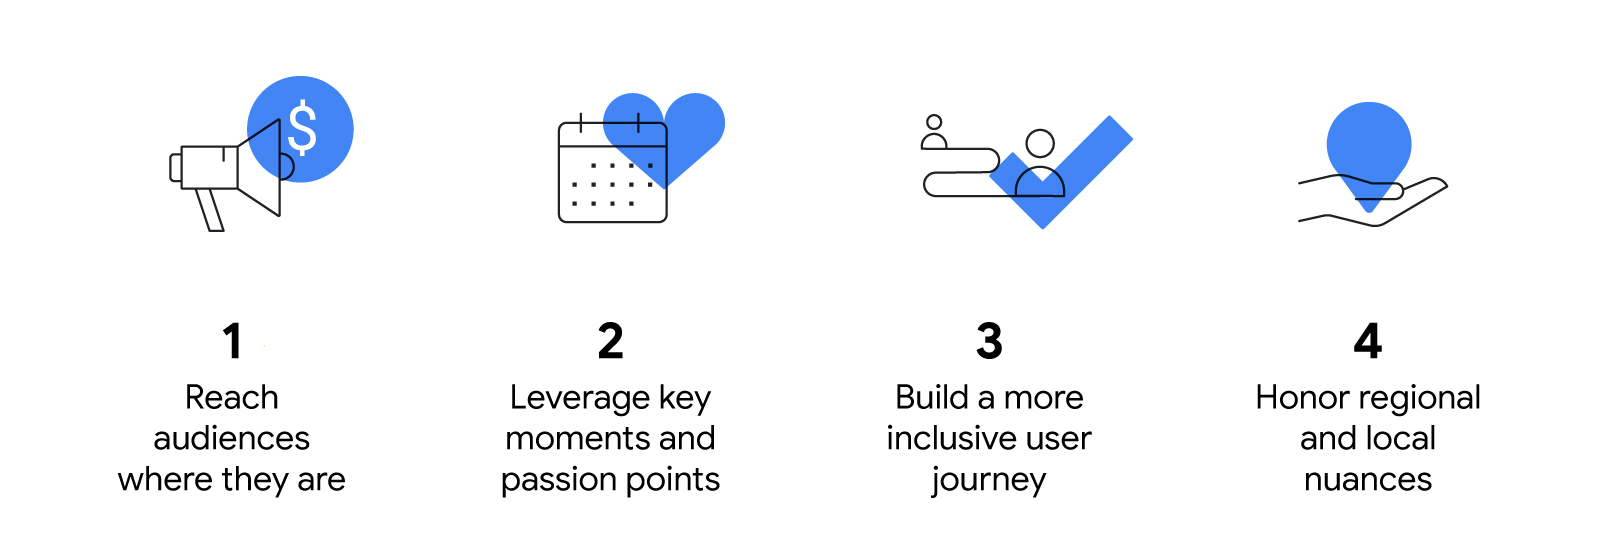 4 tips for successful inclusive brand campaigns from Google Media Lab: Reach audiences where they are; leverage key moments and passion points; build a more inclusive user journey; and honor regional and local nuances